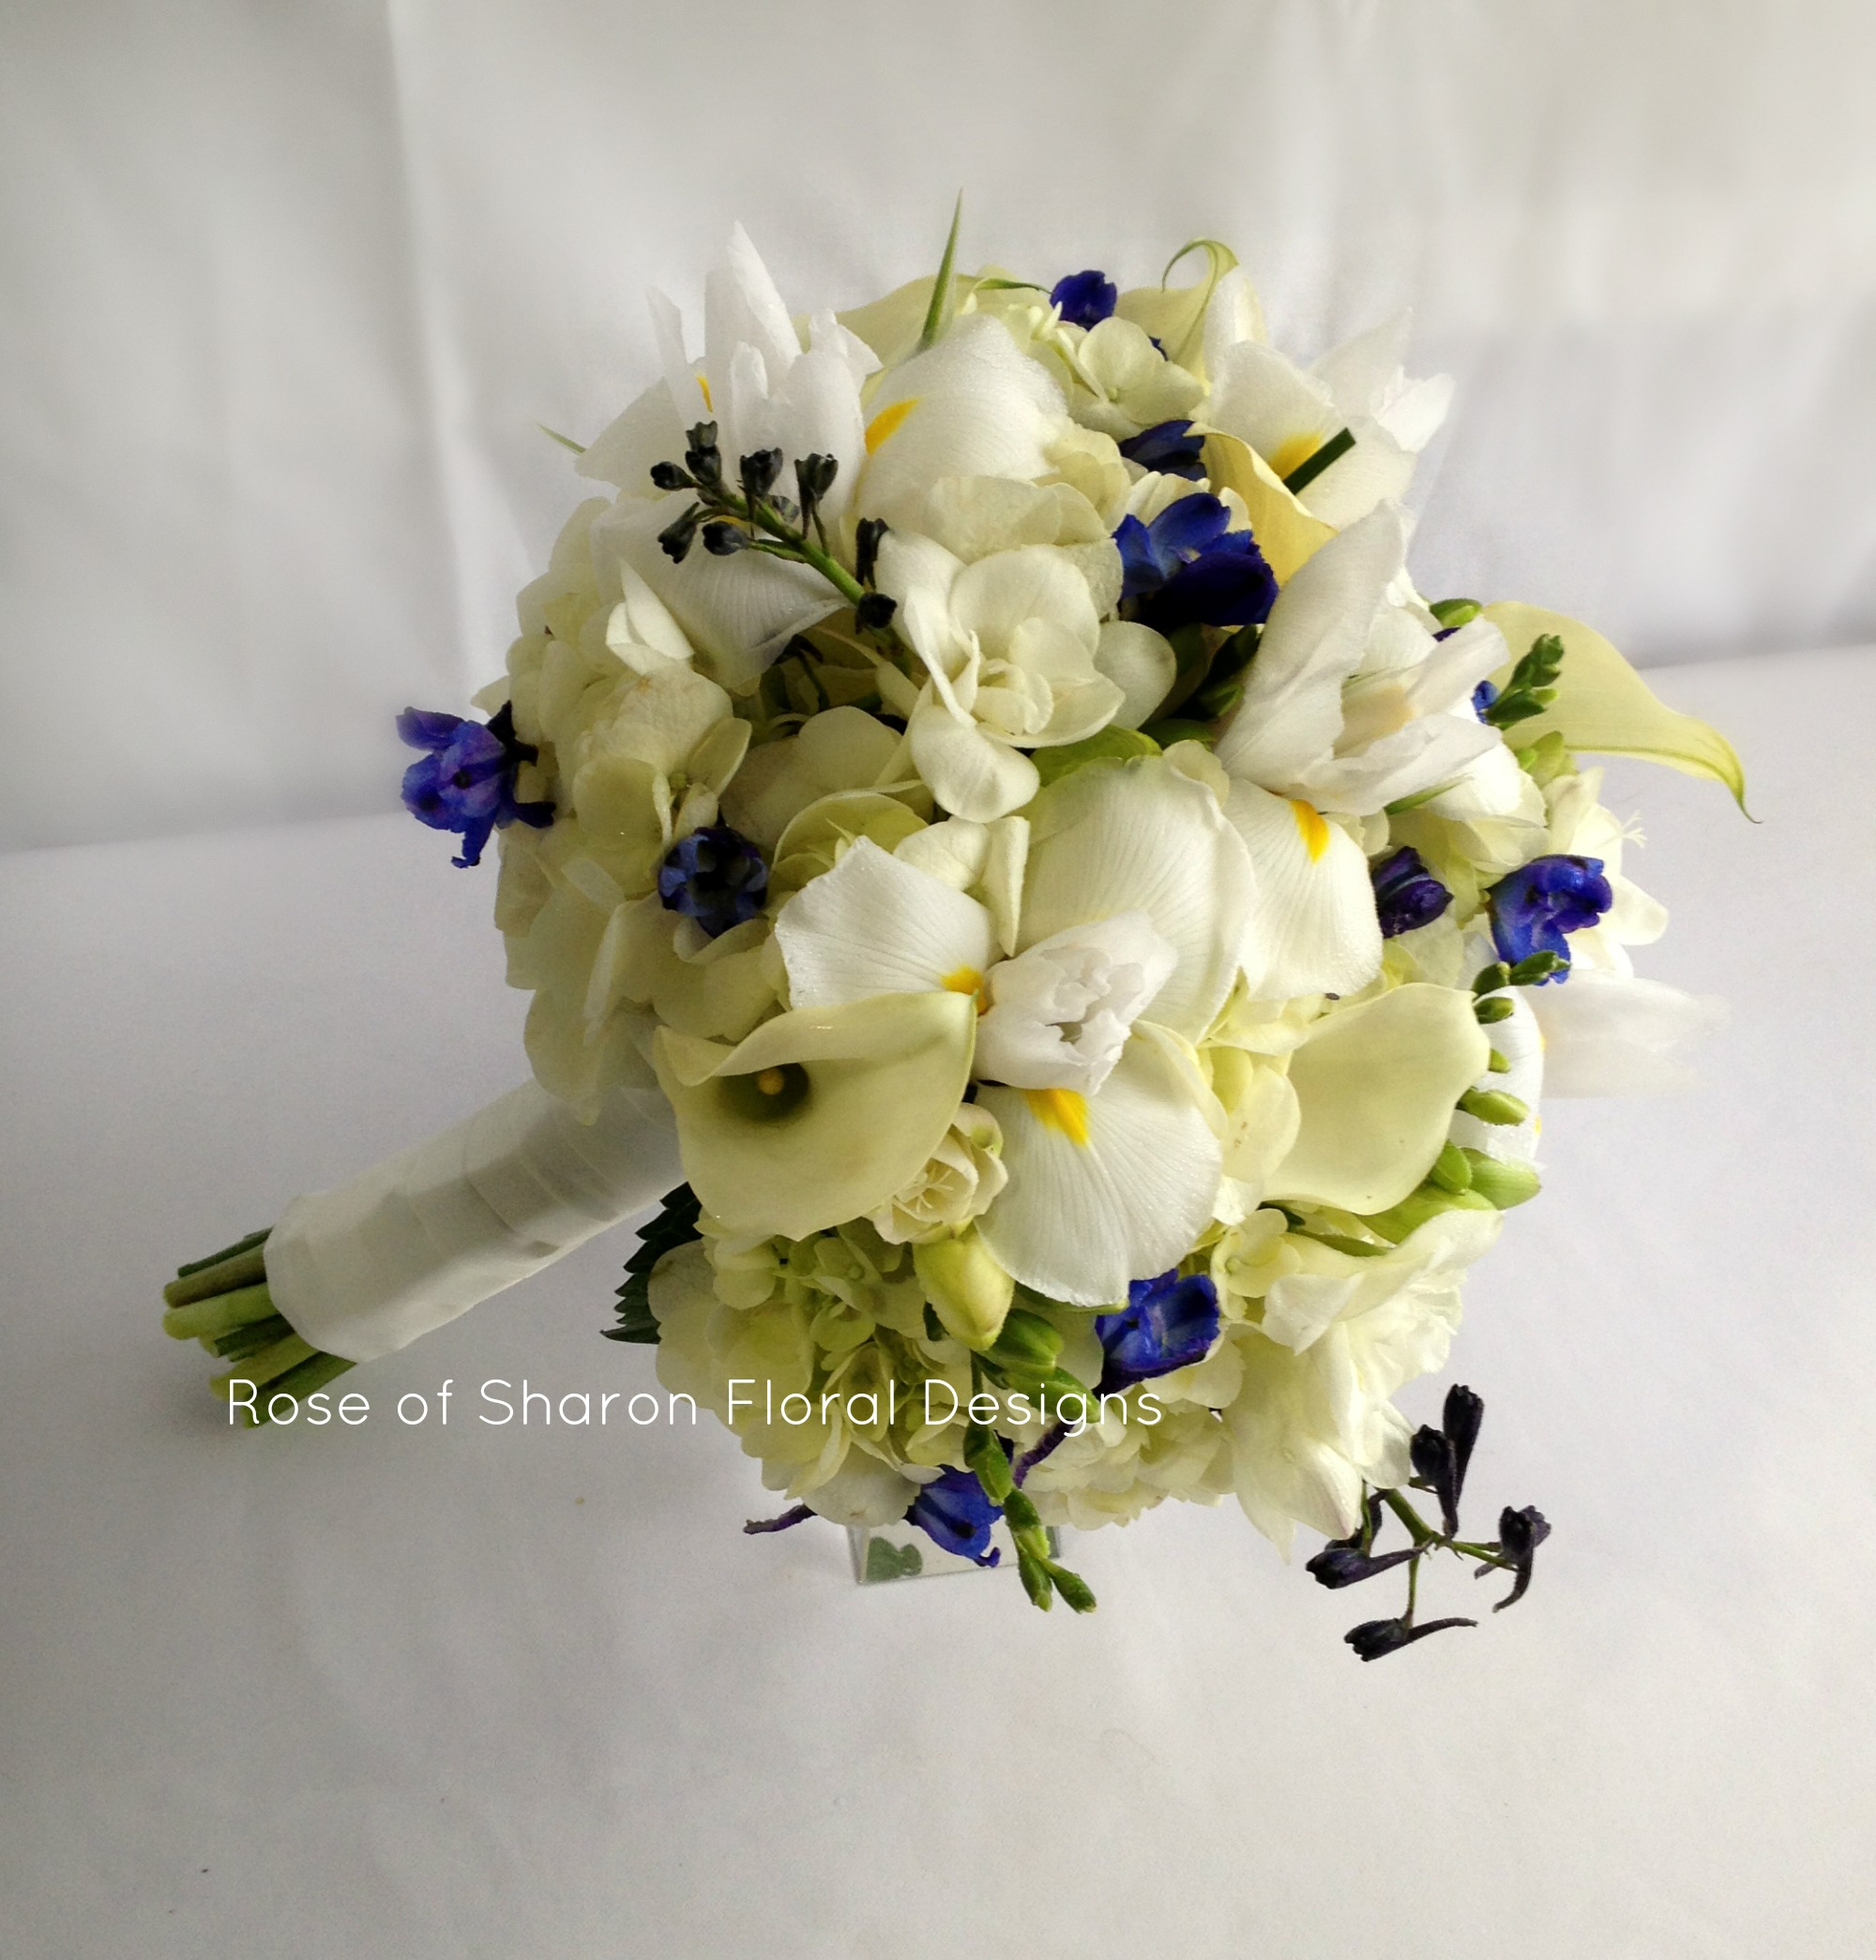 Blue and Ivory Hand-Tied Bouquet with Hydrangeas, Calla Lilies, Irises and Delphinium. Rose of Sharon Floral Designs